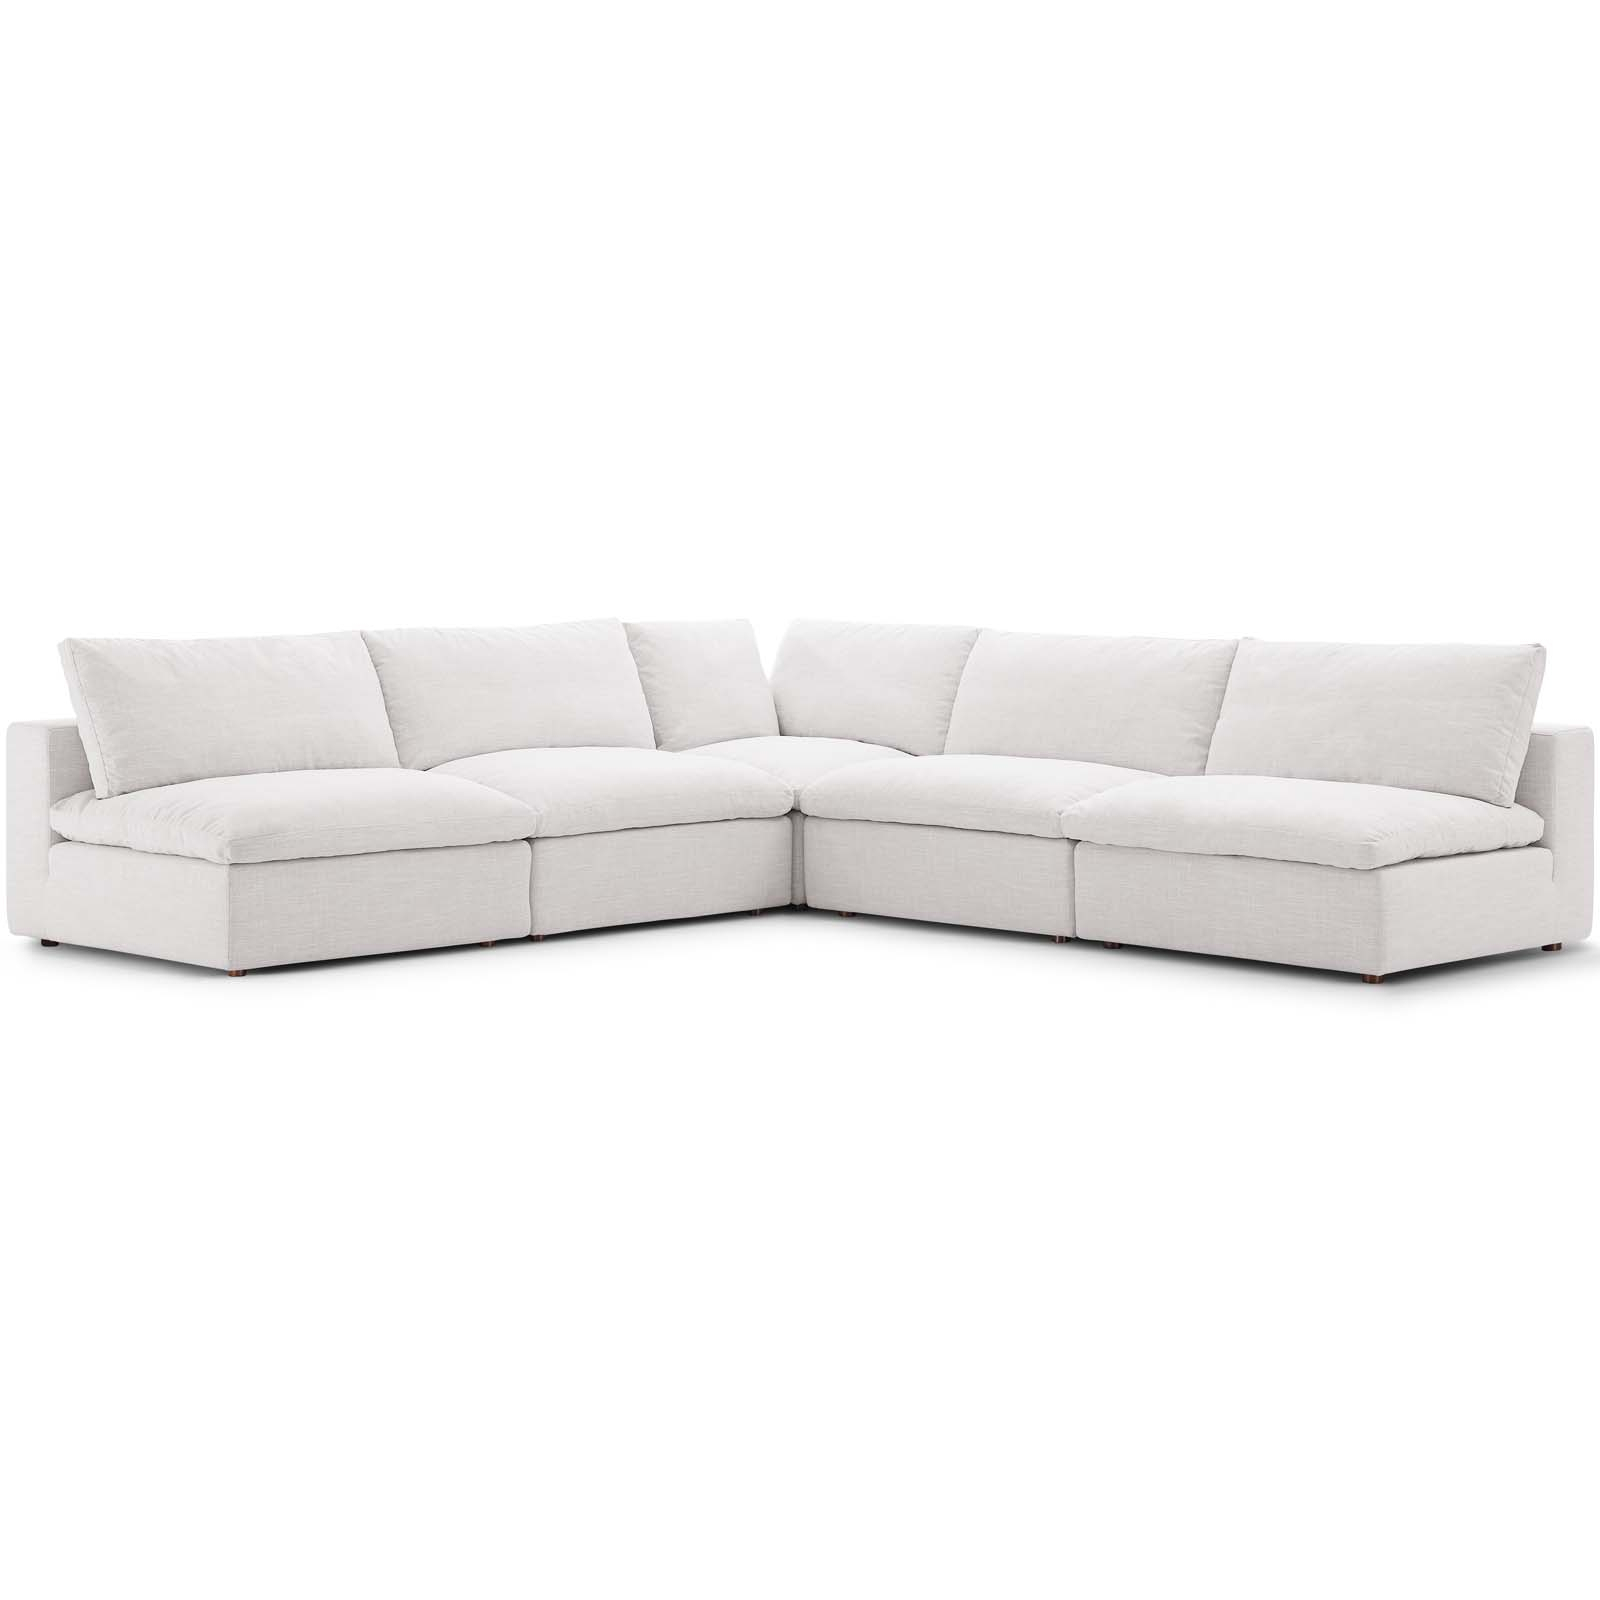 Commix Down Filled Overstuffed 5 Piece Sectional Sofa Set Regarding Down Filled Sectional Sofas (View 2 of 15)